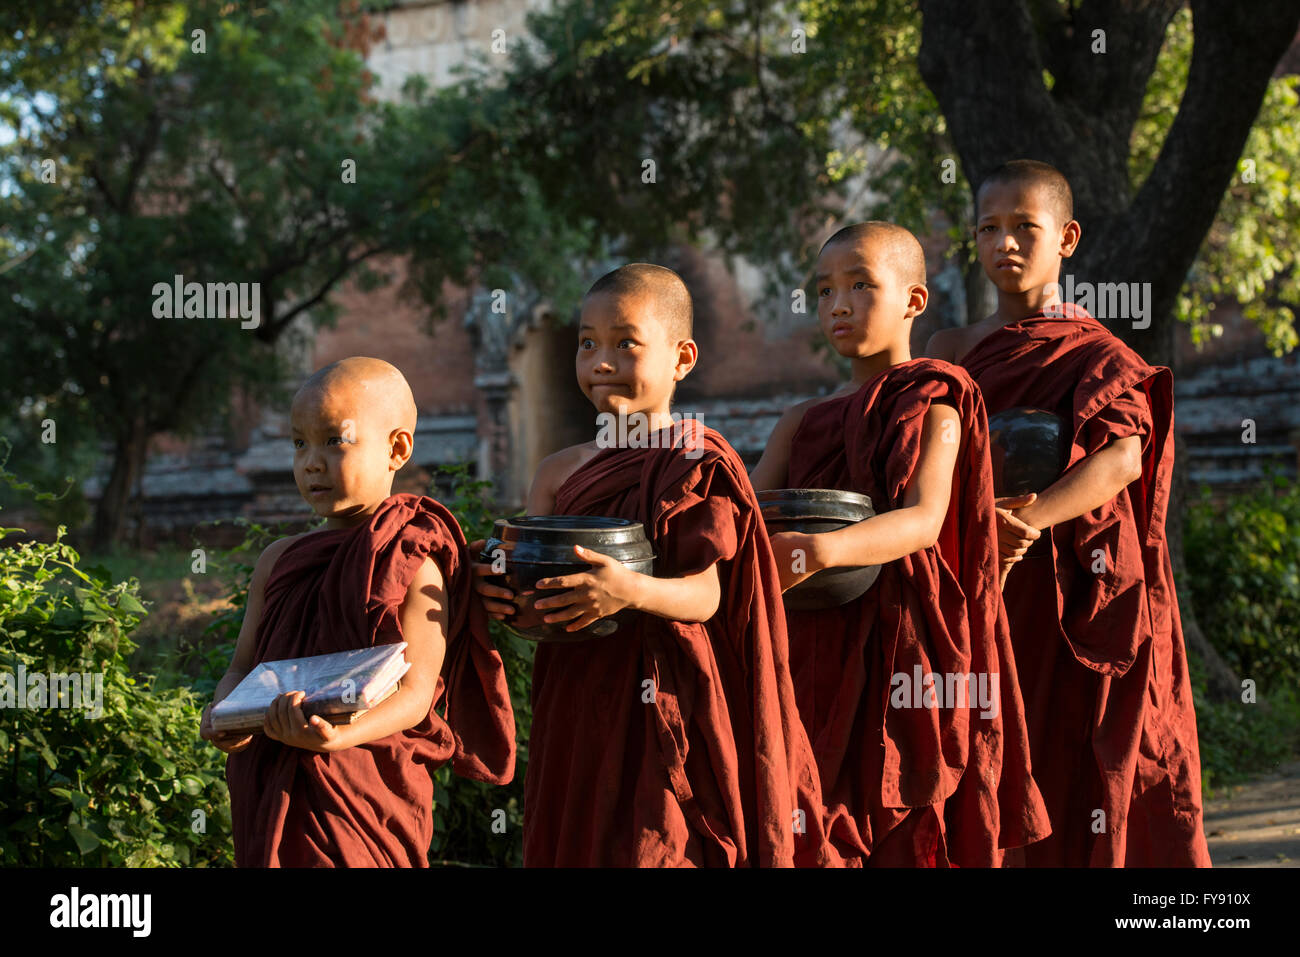 Myanmar, Amarapura, Mahagandayon Monastery, Buddhist Monks with bowls collect food donation for their meal - Stock Image